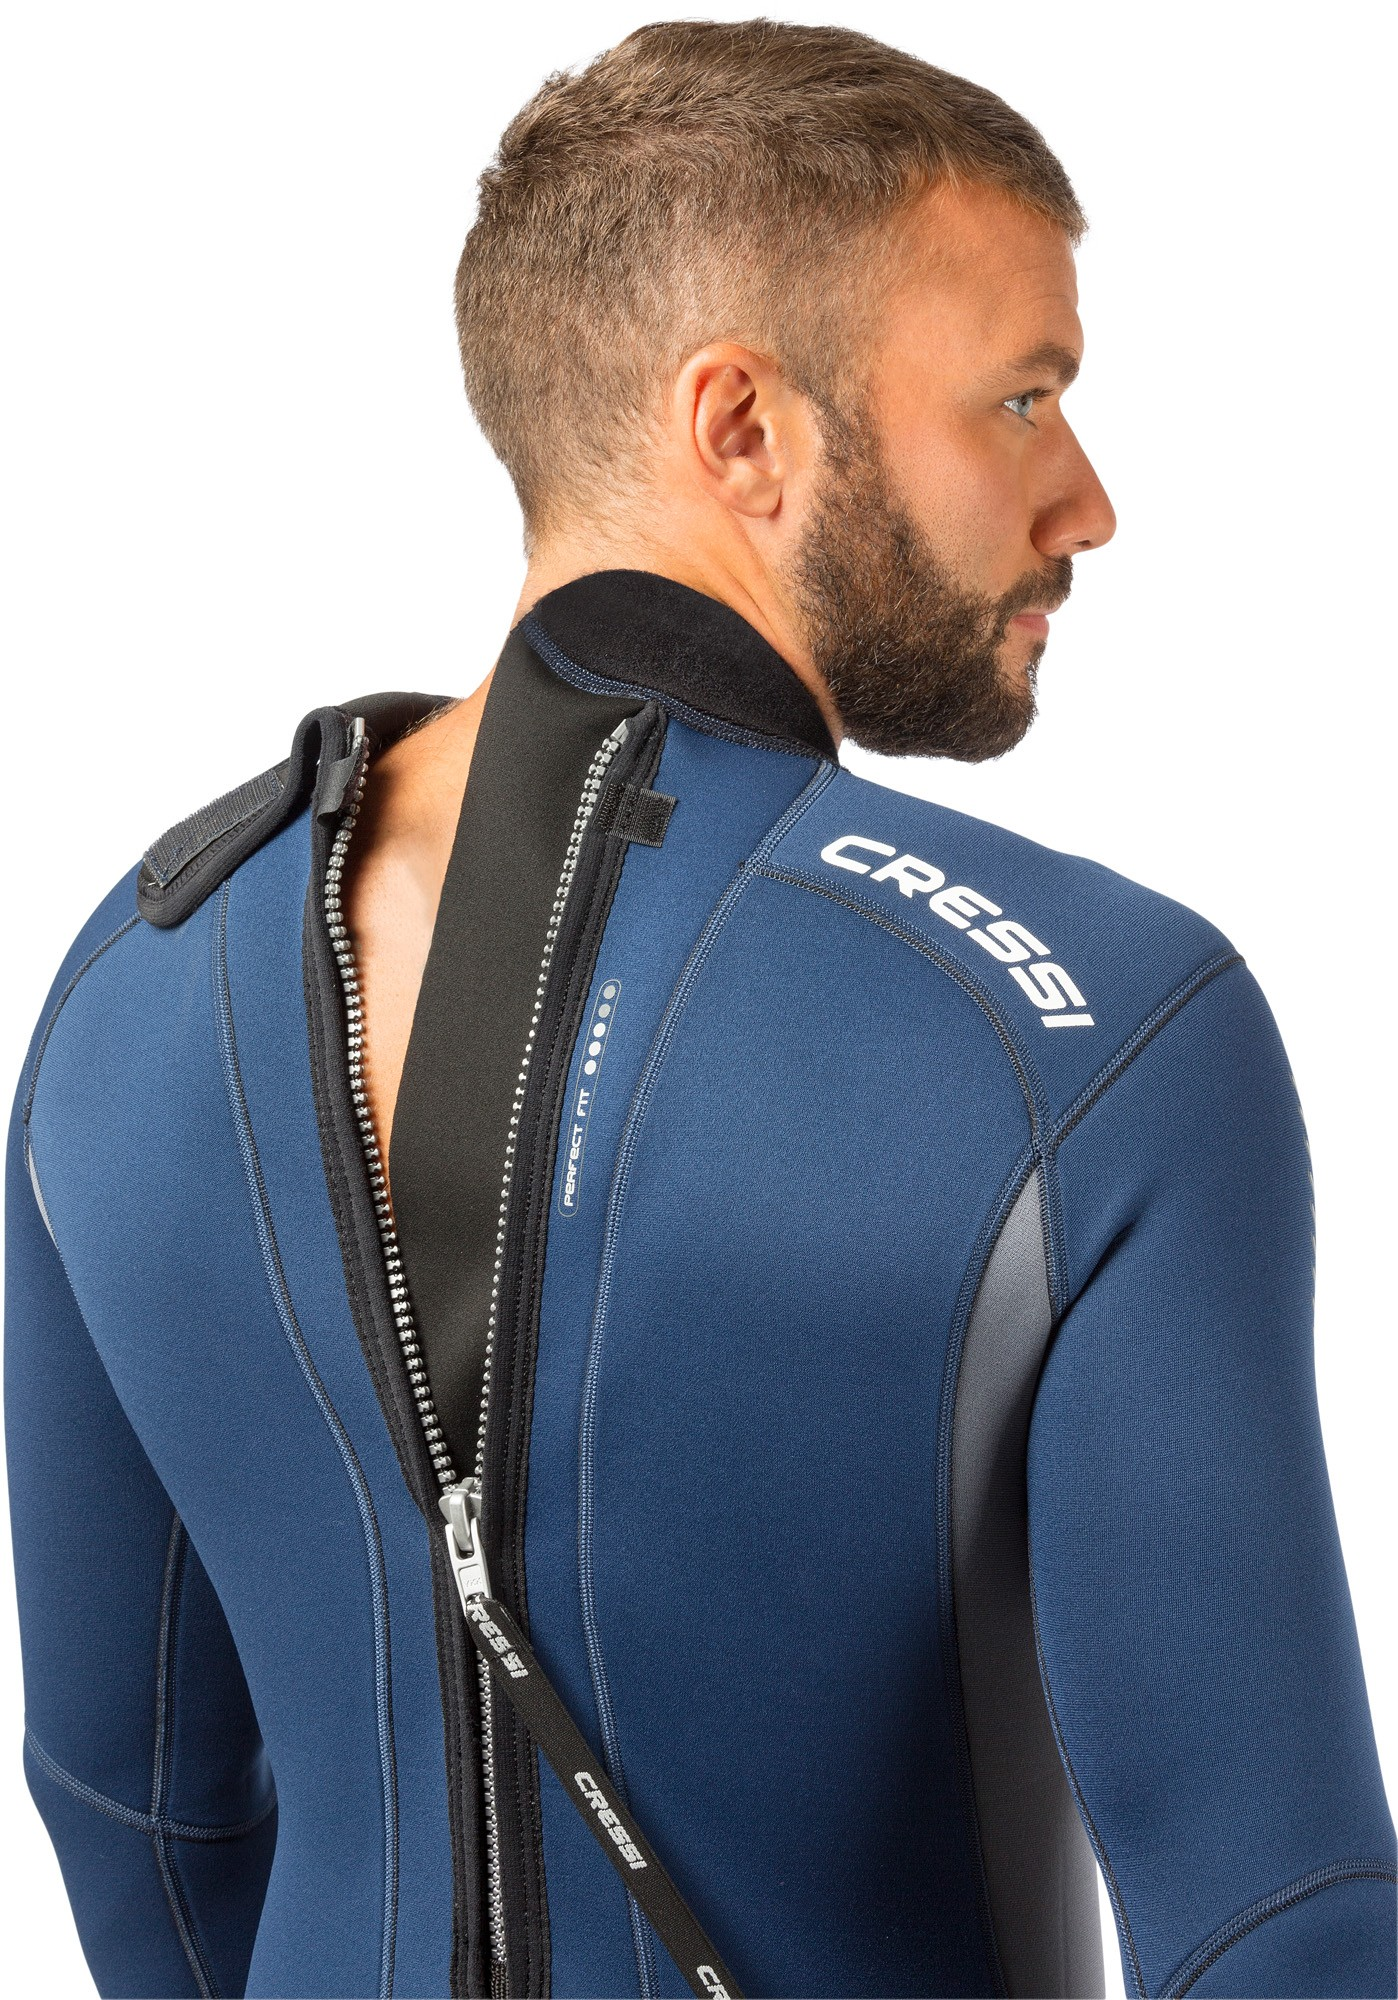 FAST Man Wetsuit 3 mm